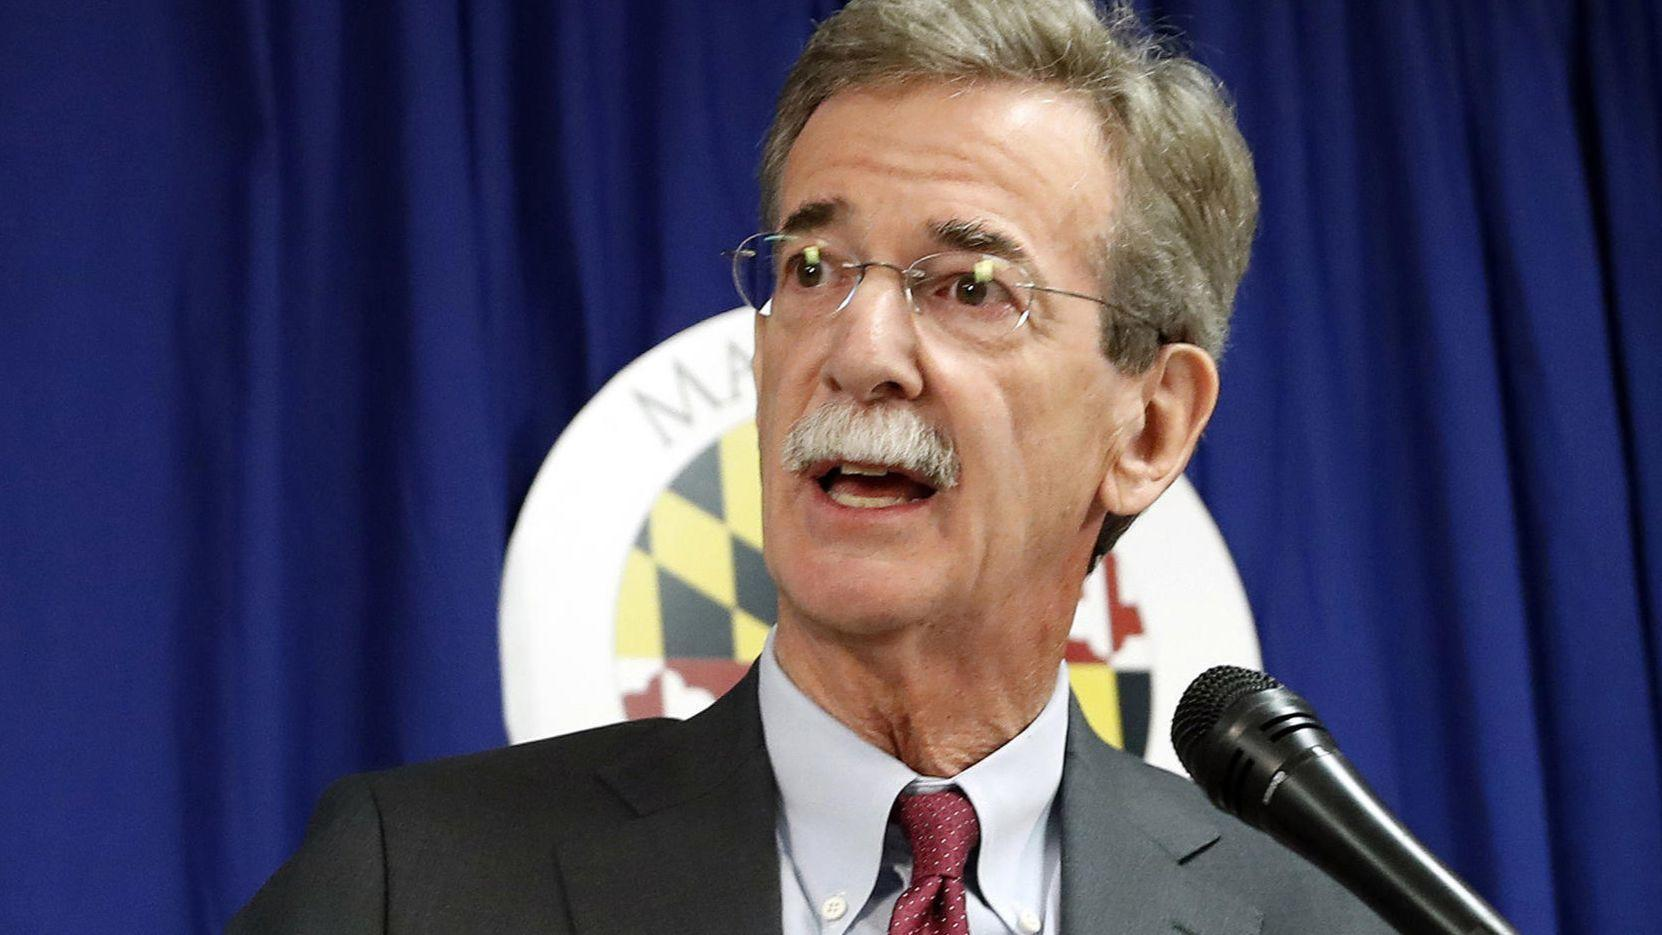 Pennsylvania report on Catholic church abuse leads to calls for Frosh to investigate in Maryland | Baltimore Sun